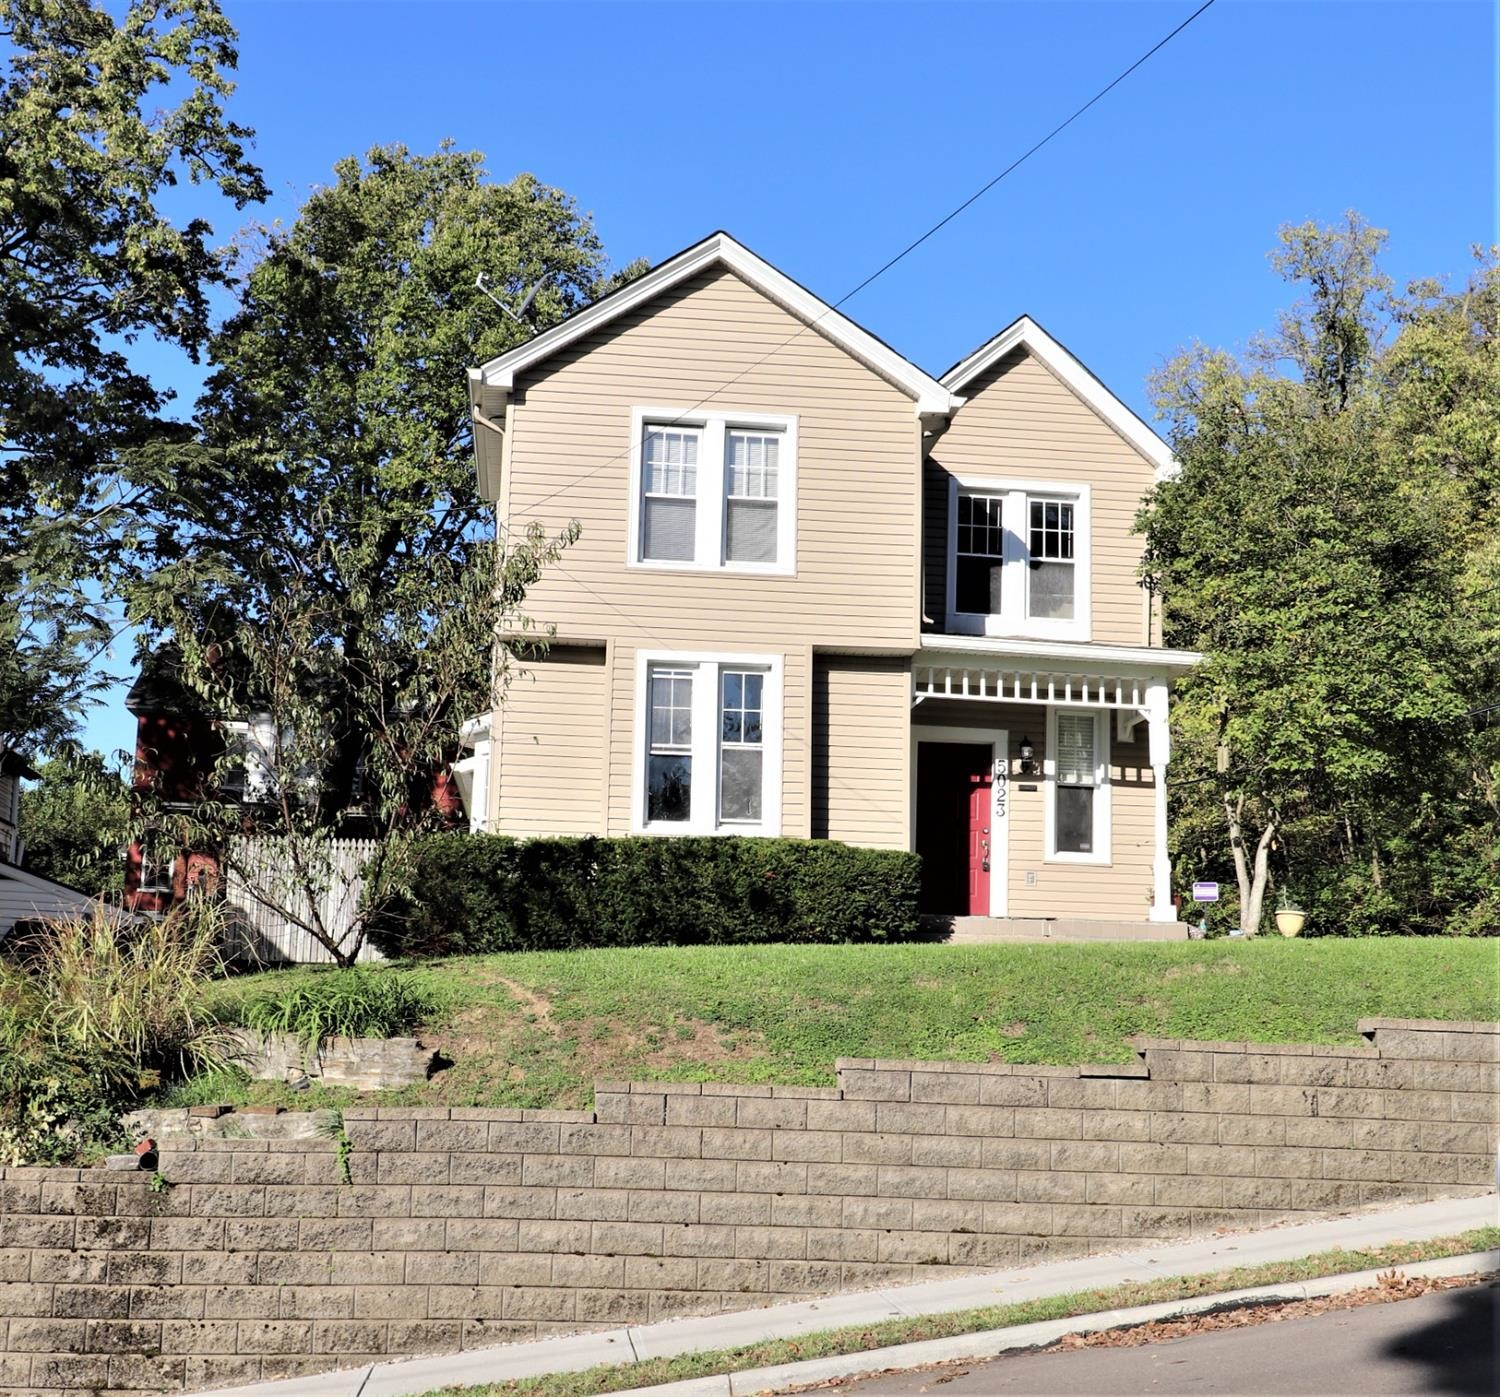 4-Bedroom House In Norwood